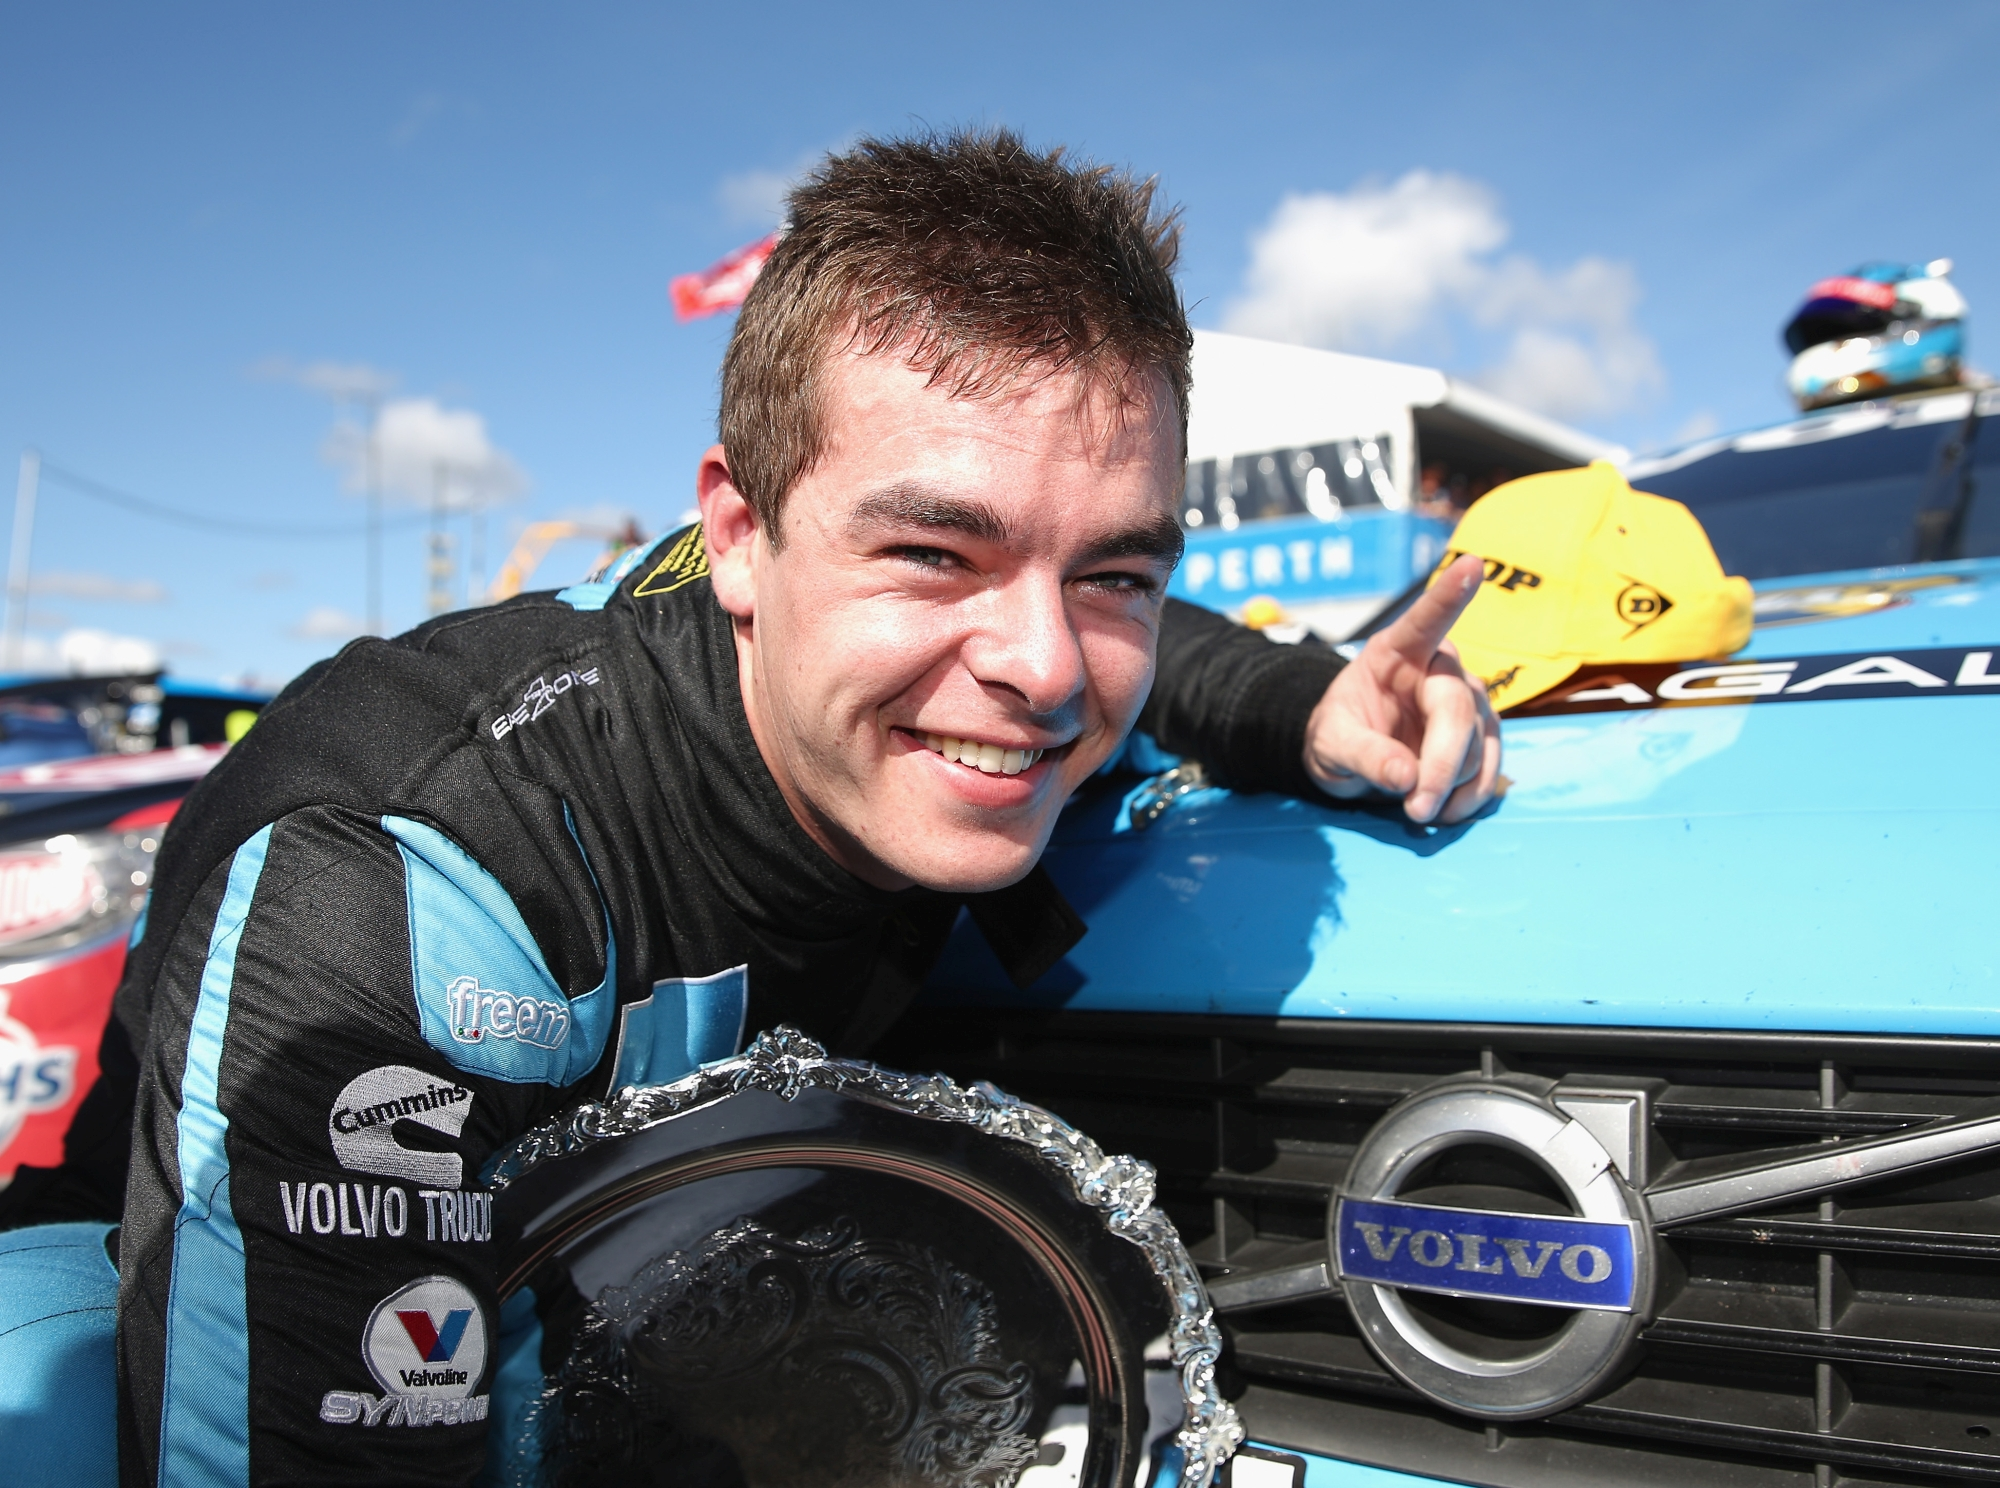 Hero of the day was Scott McLaughlin who flew his blue Volvo to a landmark win in the first of the V8 Supercar races. Picture: Getty Images.